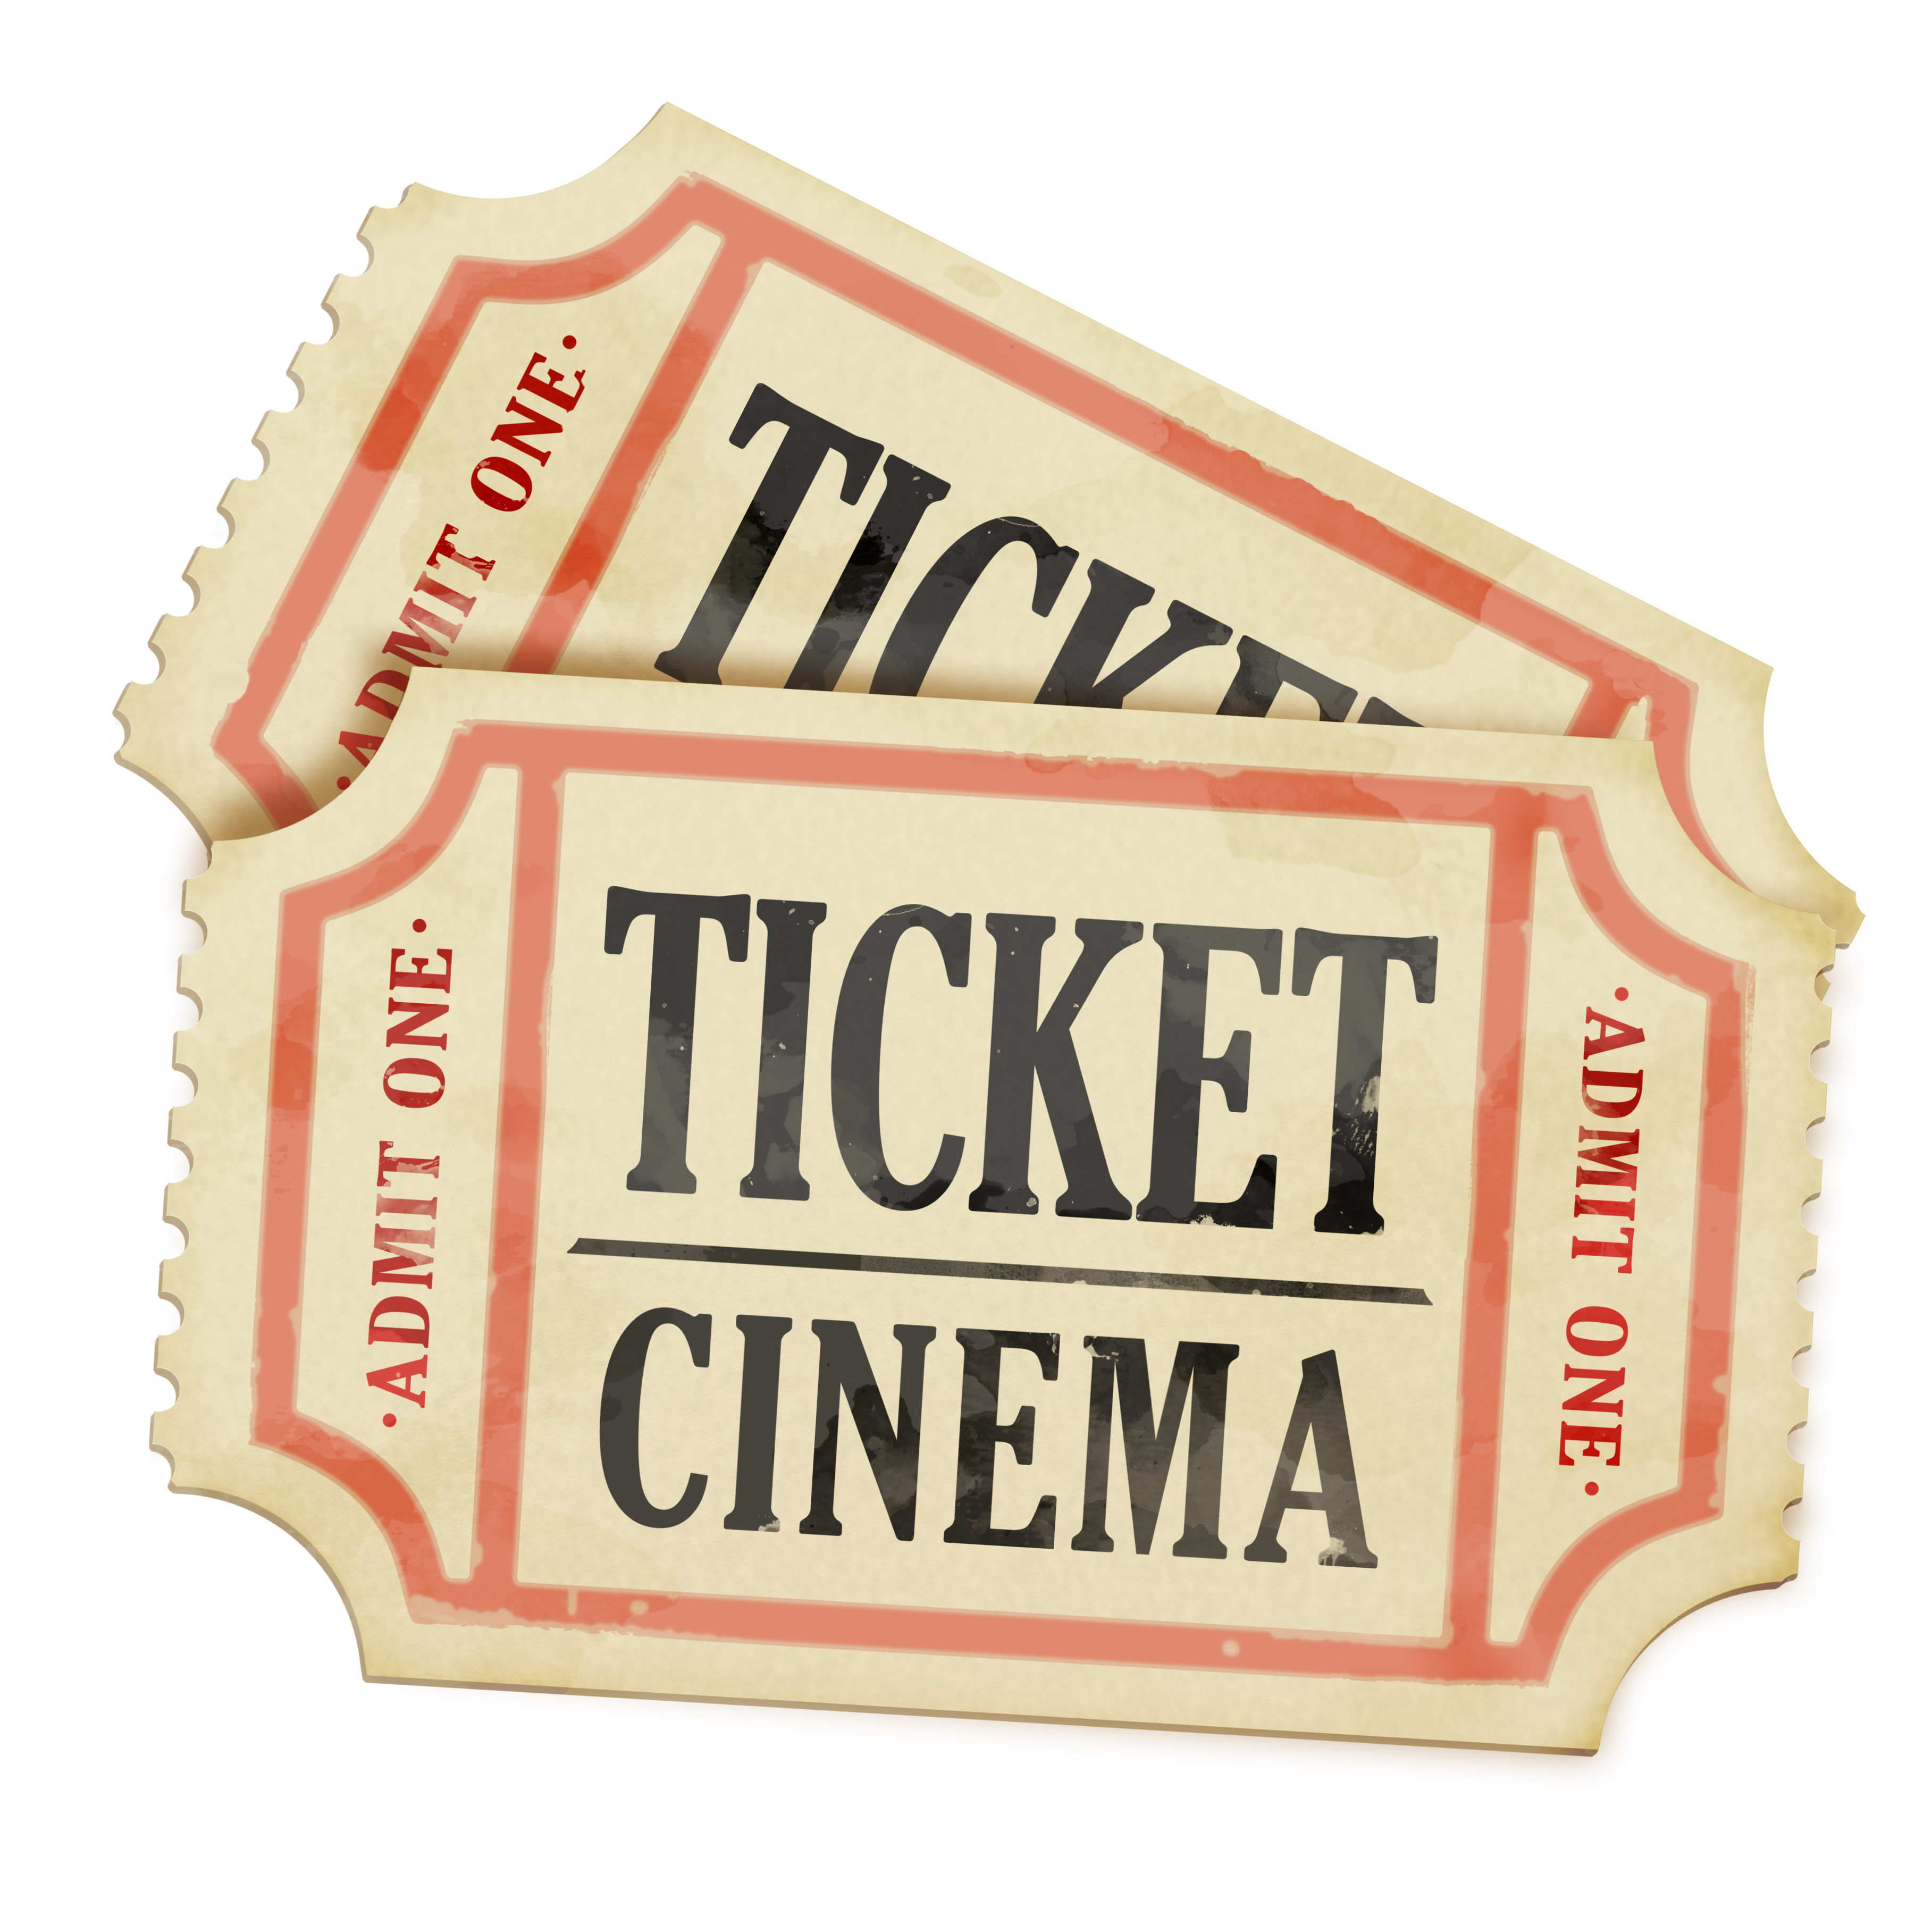 Movie tickets. Photo credit: Shutterstock.com